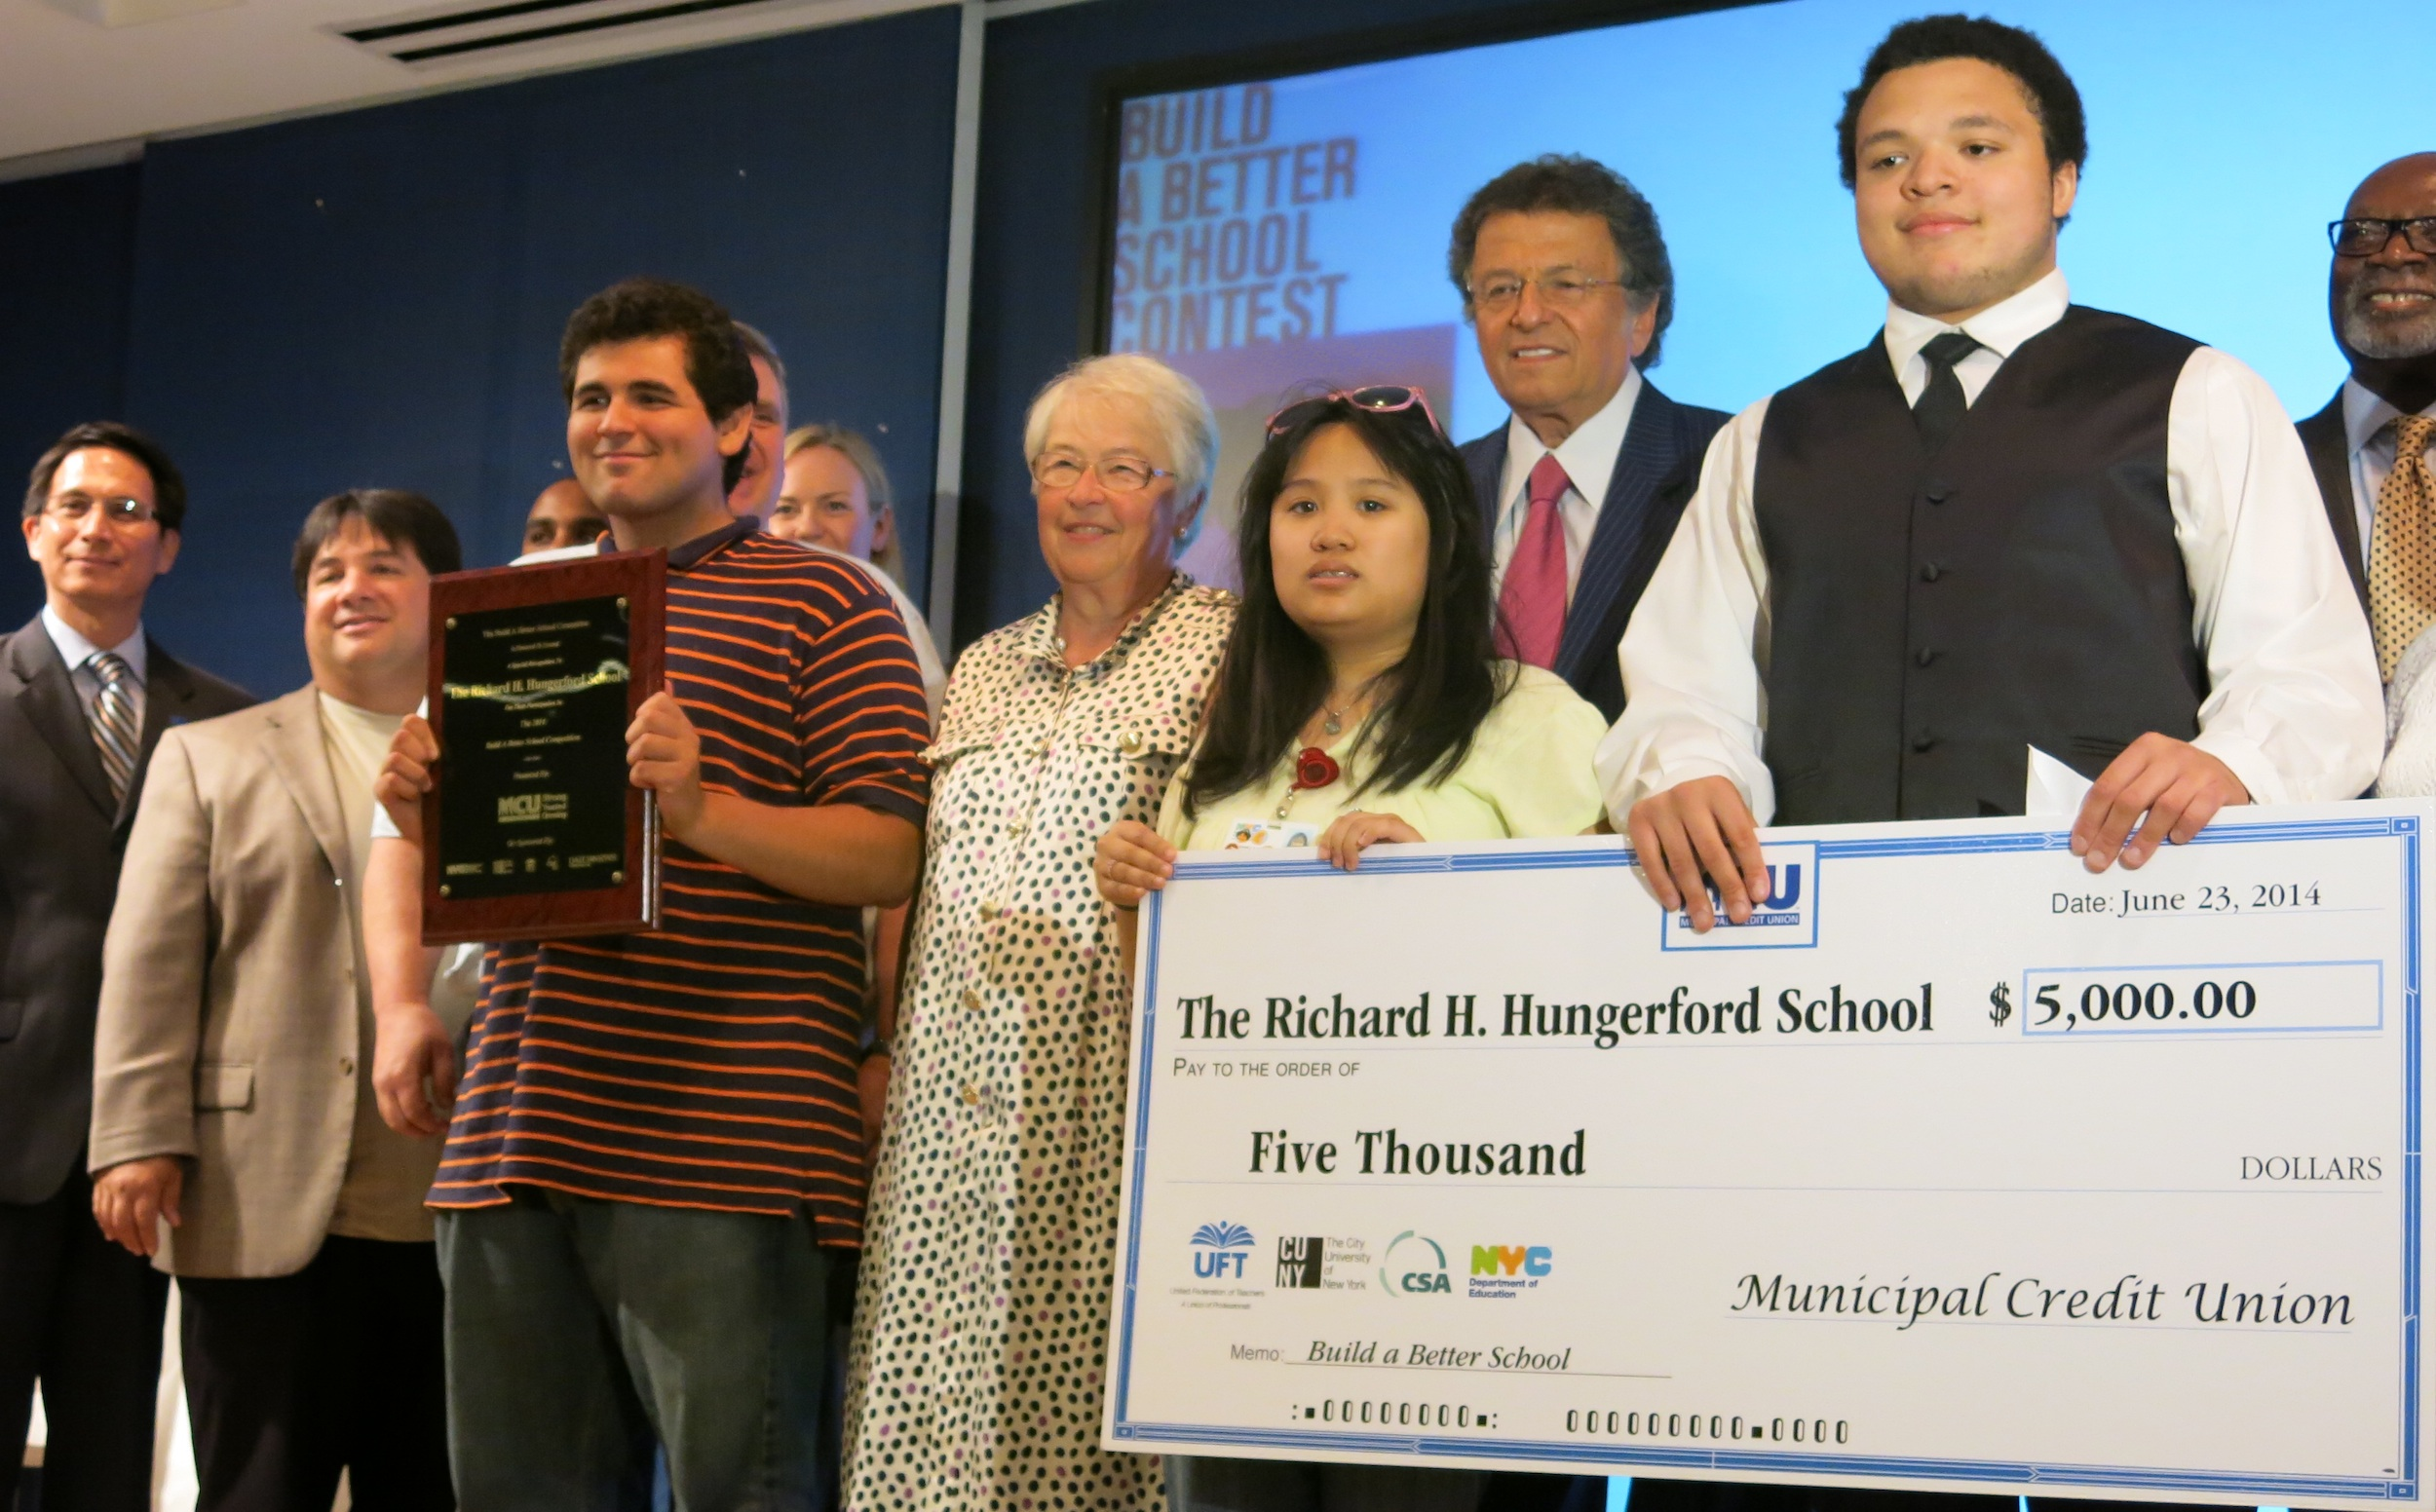 Chancellor Carmen Fariña awarded students at the Hungerford School $5,000 to build a weather station as part of the Build a Better School contest.